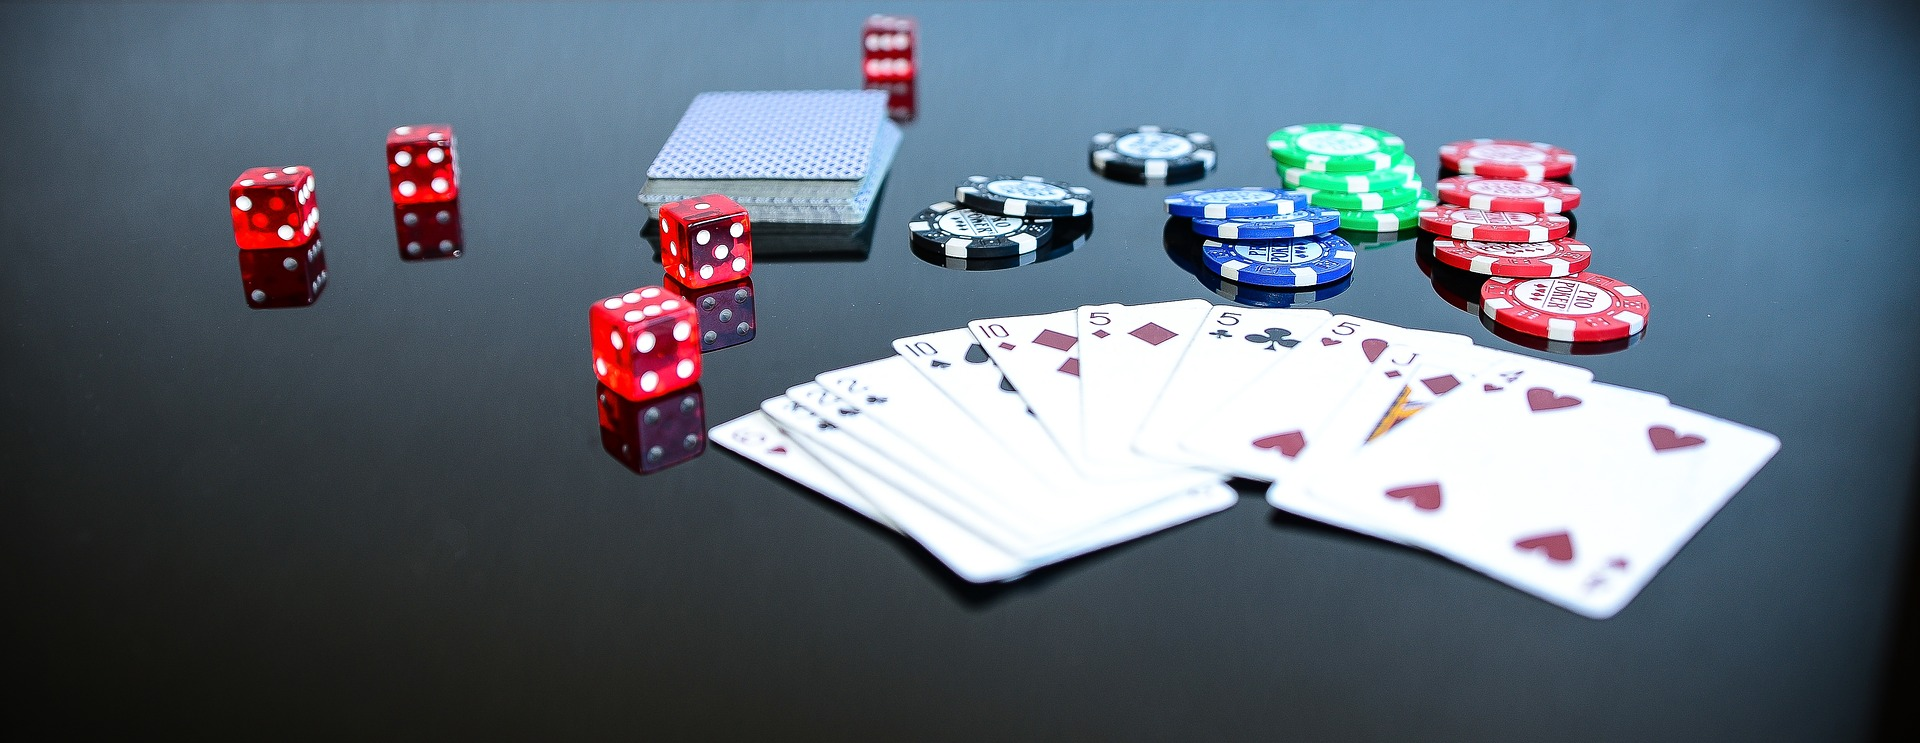 Bonussen en Playthrough Vereisten in online casino's